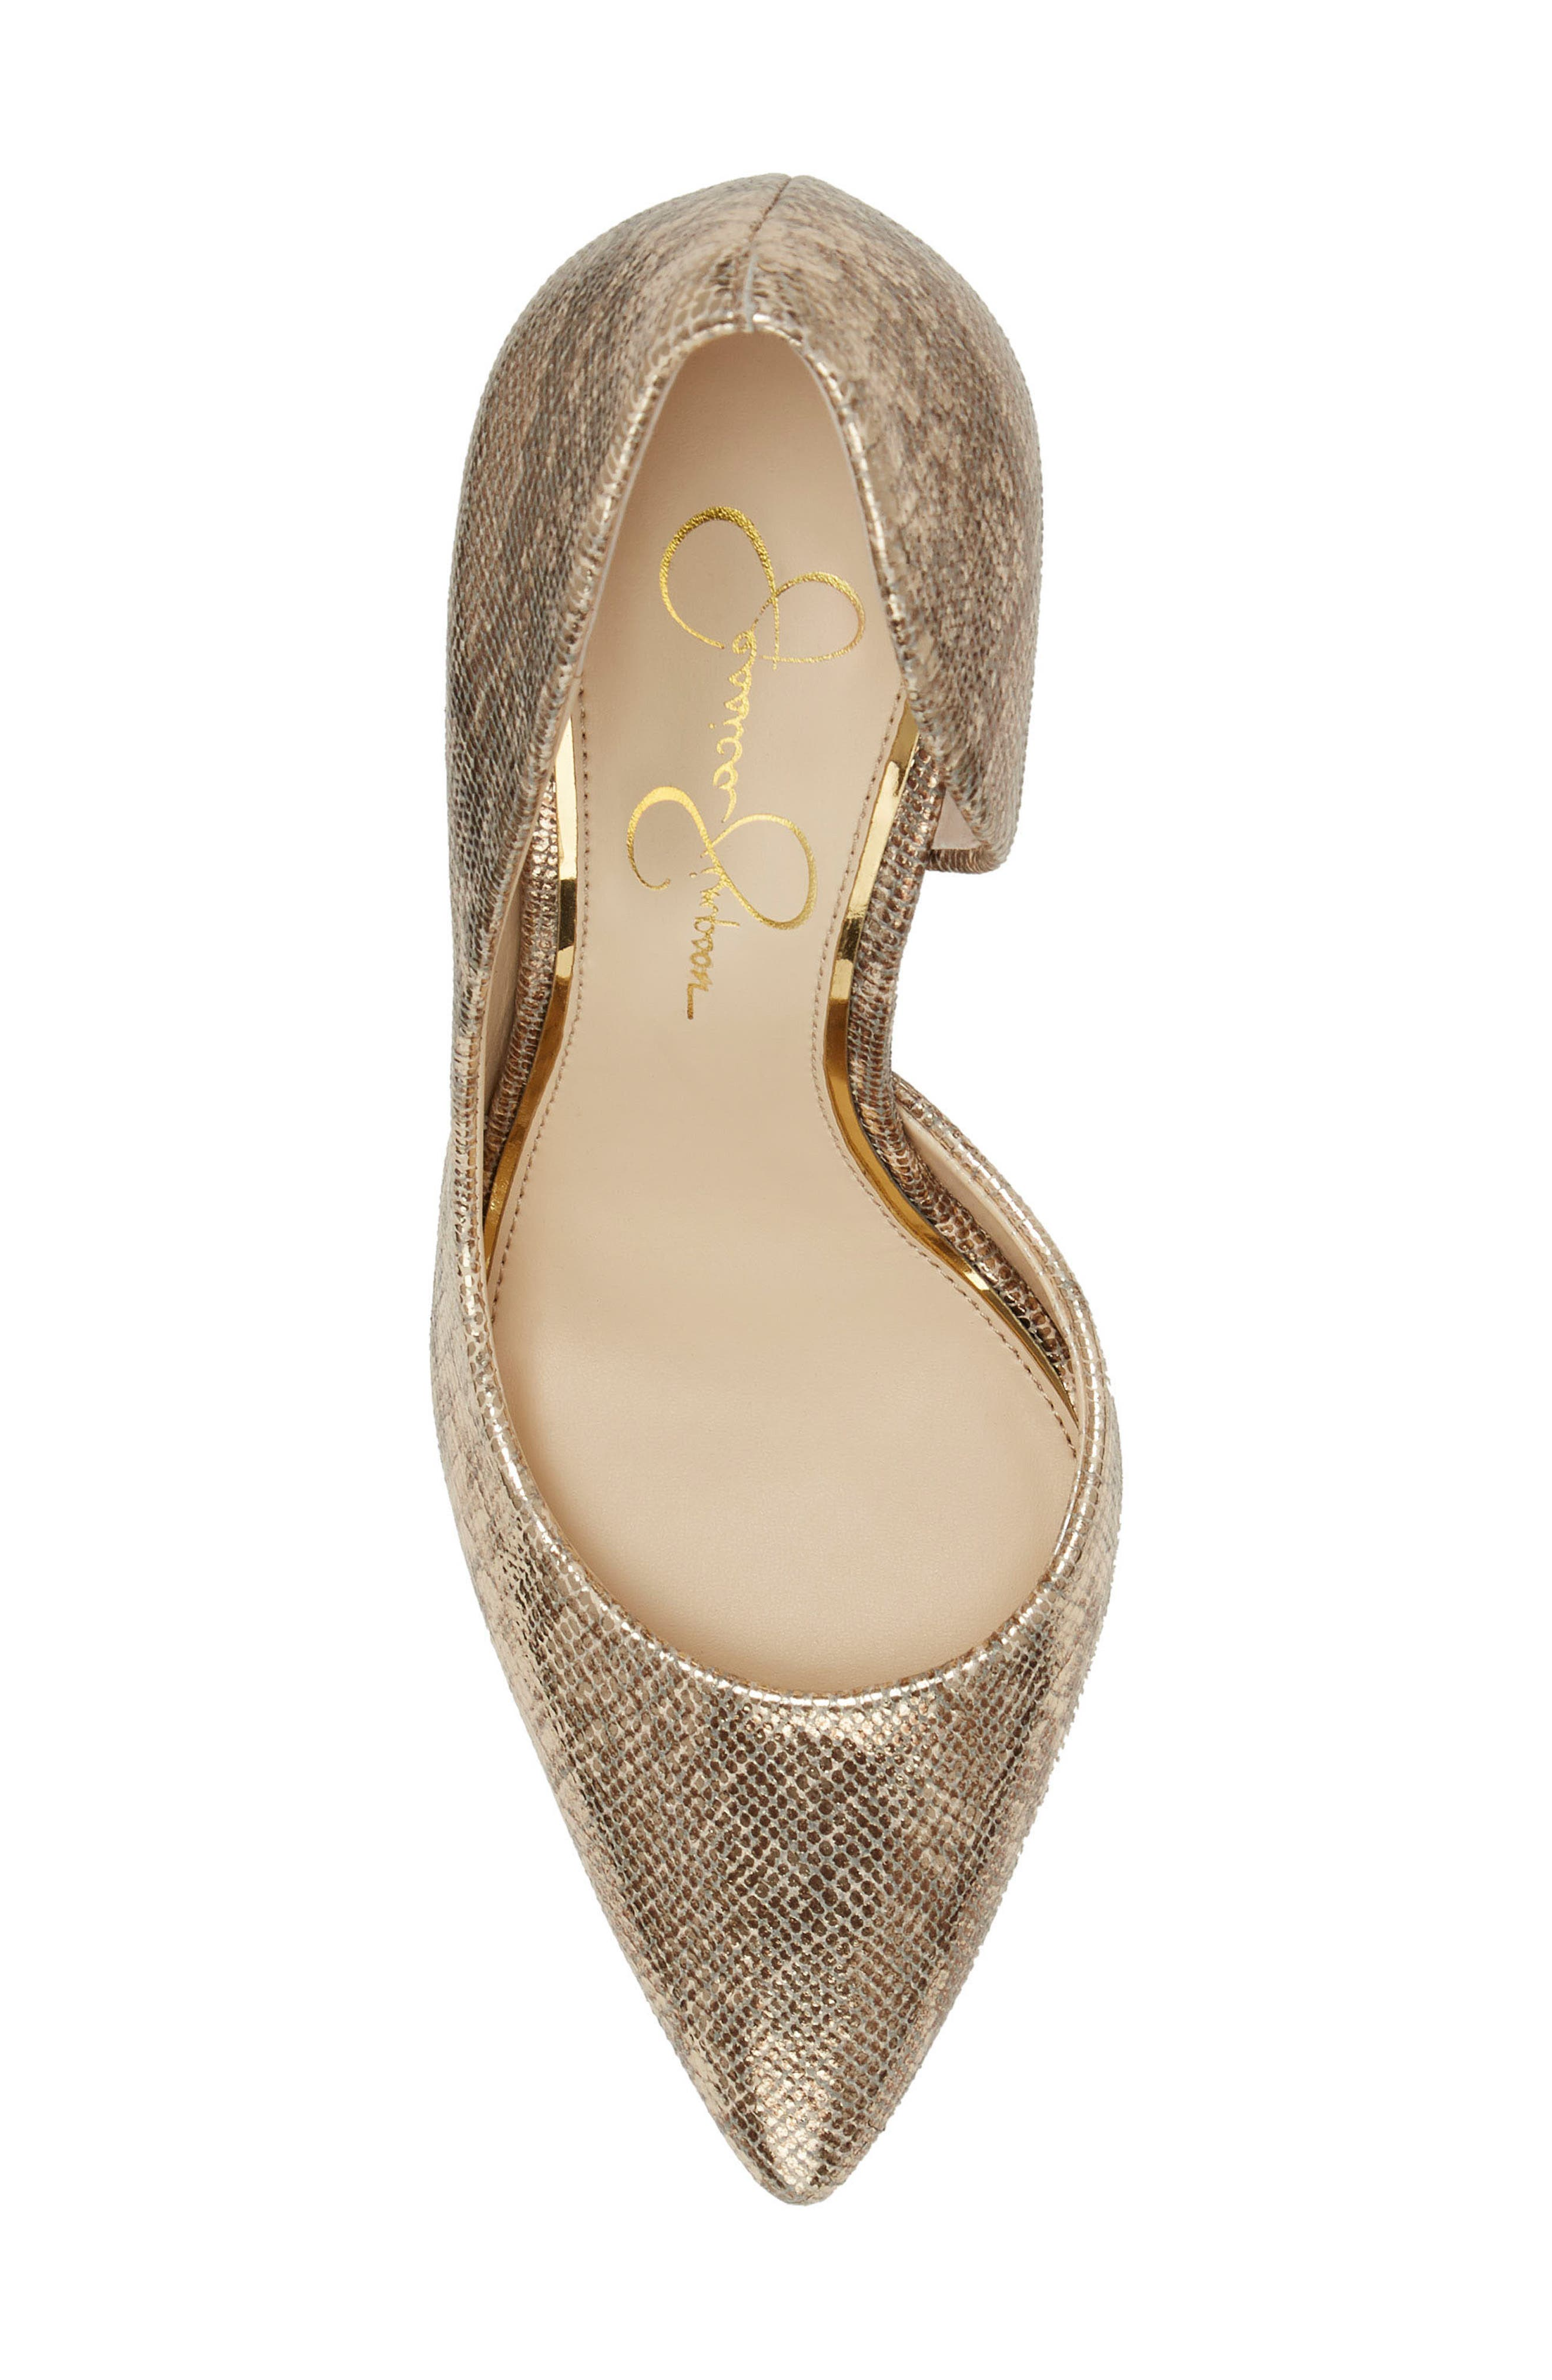 JESSICA SIMPSON,                             Pheona Pump,                             Alternate thumbnail 4, color,                             KARAT GOLD